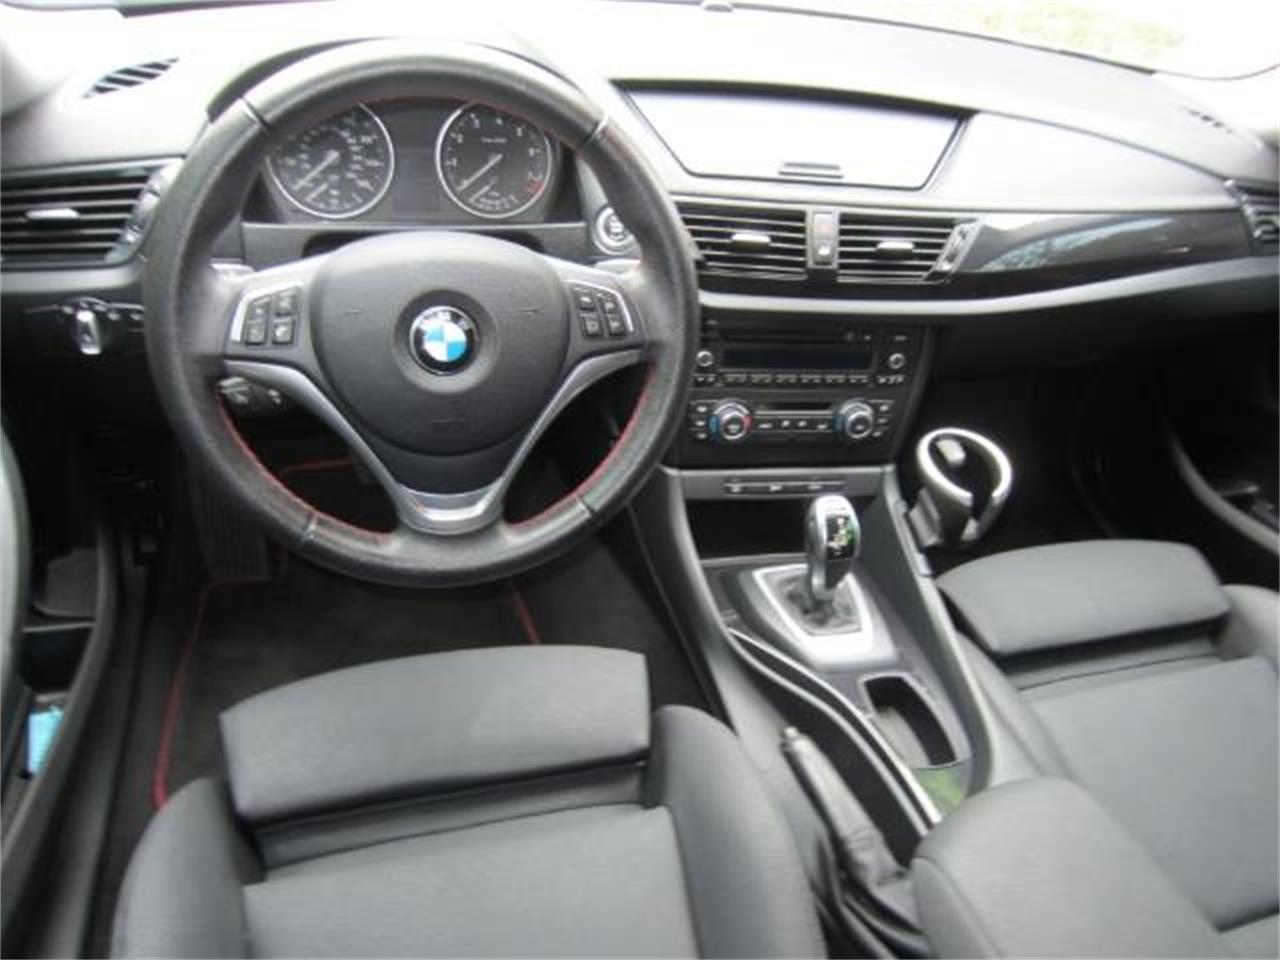 Large Picture of '14 BMW X1 - $19,900.00 - LRWY